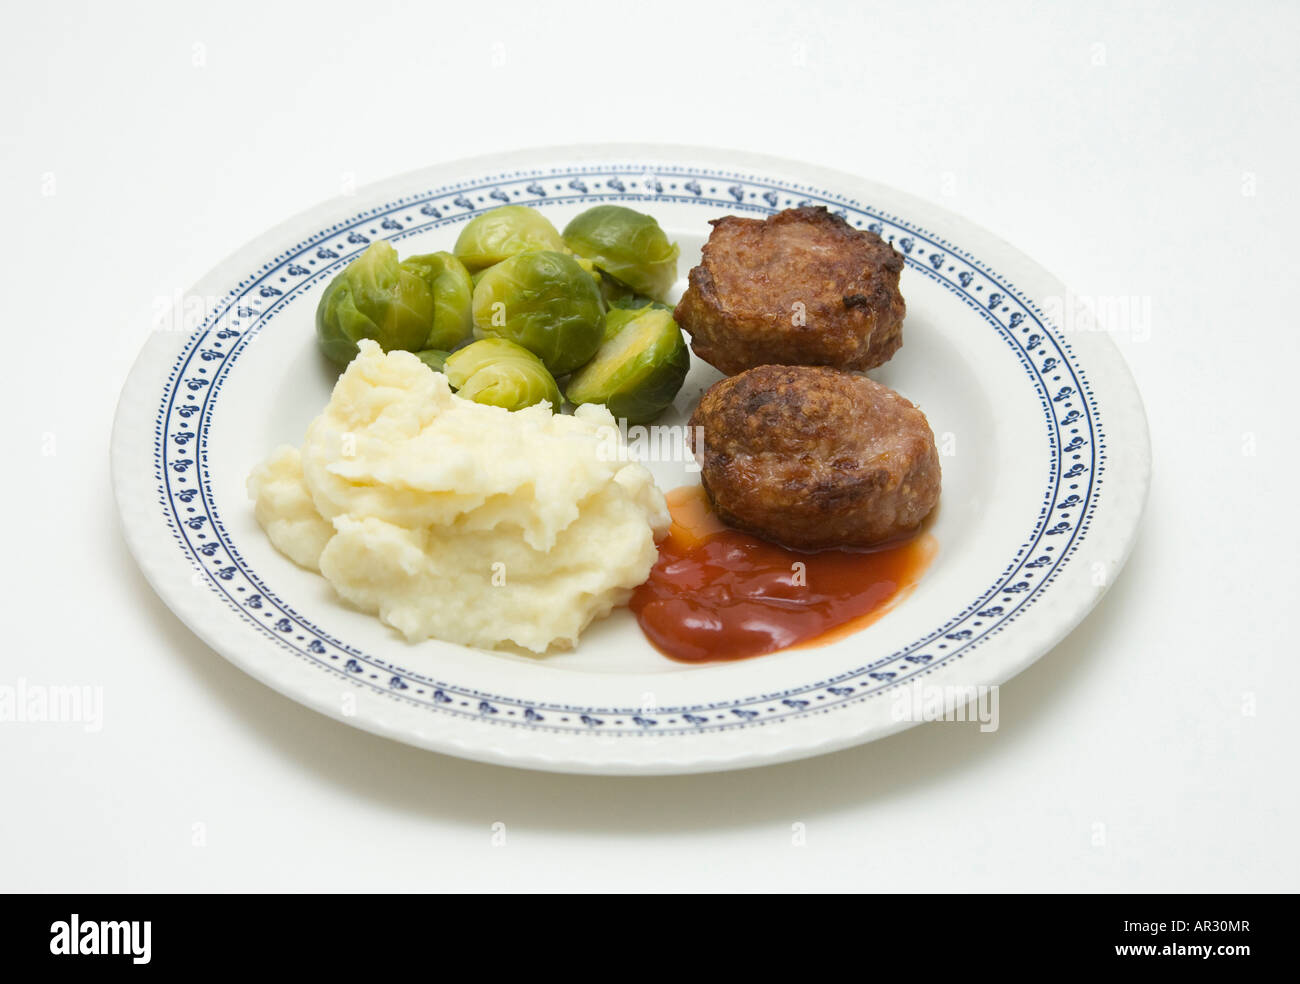 sprouts, minced pork meat and mashed potato meal Stock Photo